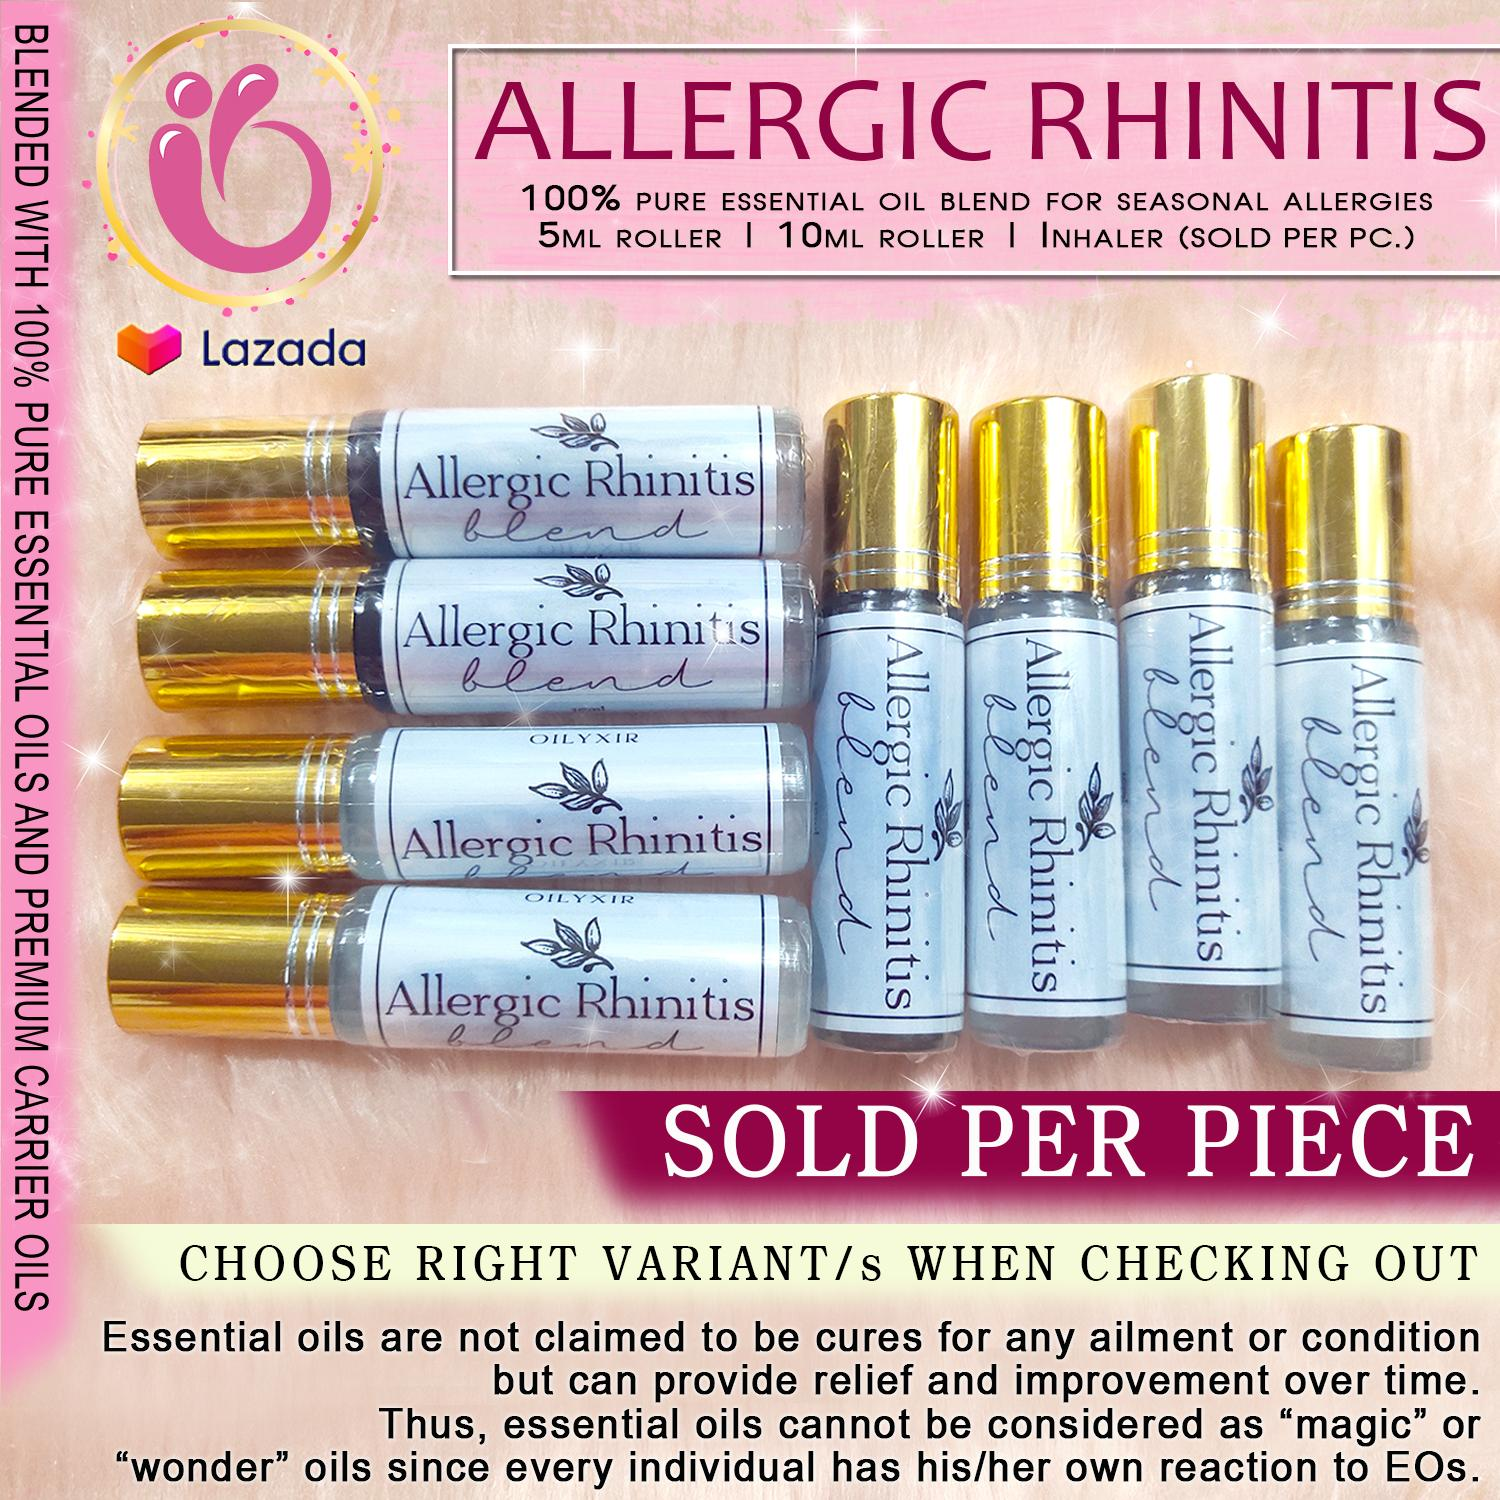 Oilyxir Allergic Rhinitis Ready To Use Essential Oil Roller Inhaler For Kids And Adults Plant Therapy Eden S Garden Now Pure Essentials Oils No More Bahing Pollen Threats Allergies Sold Per